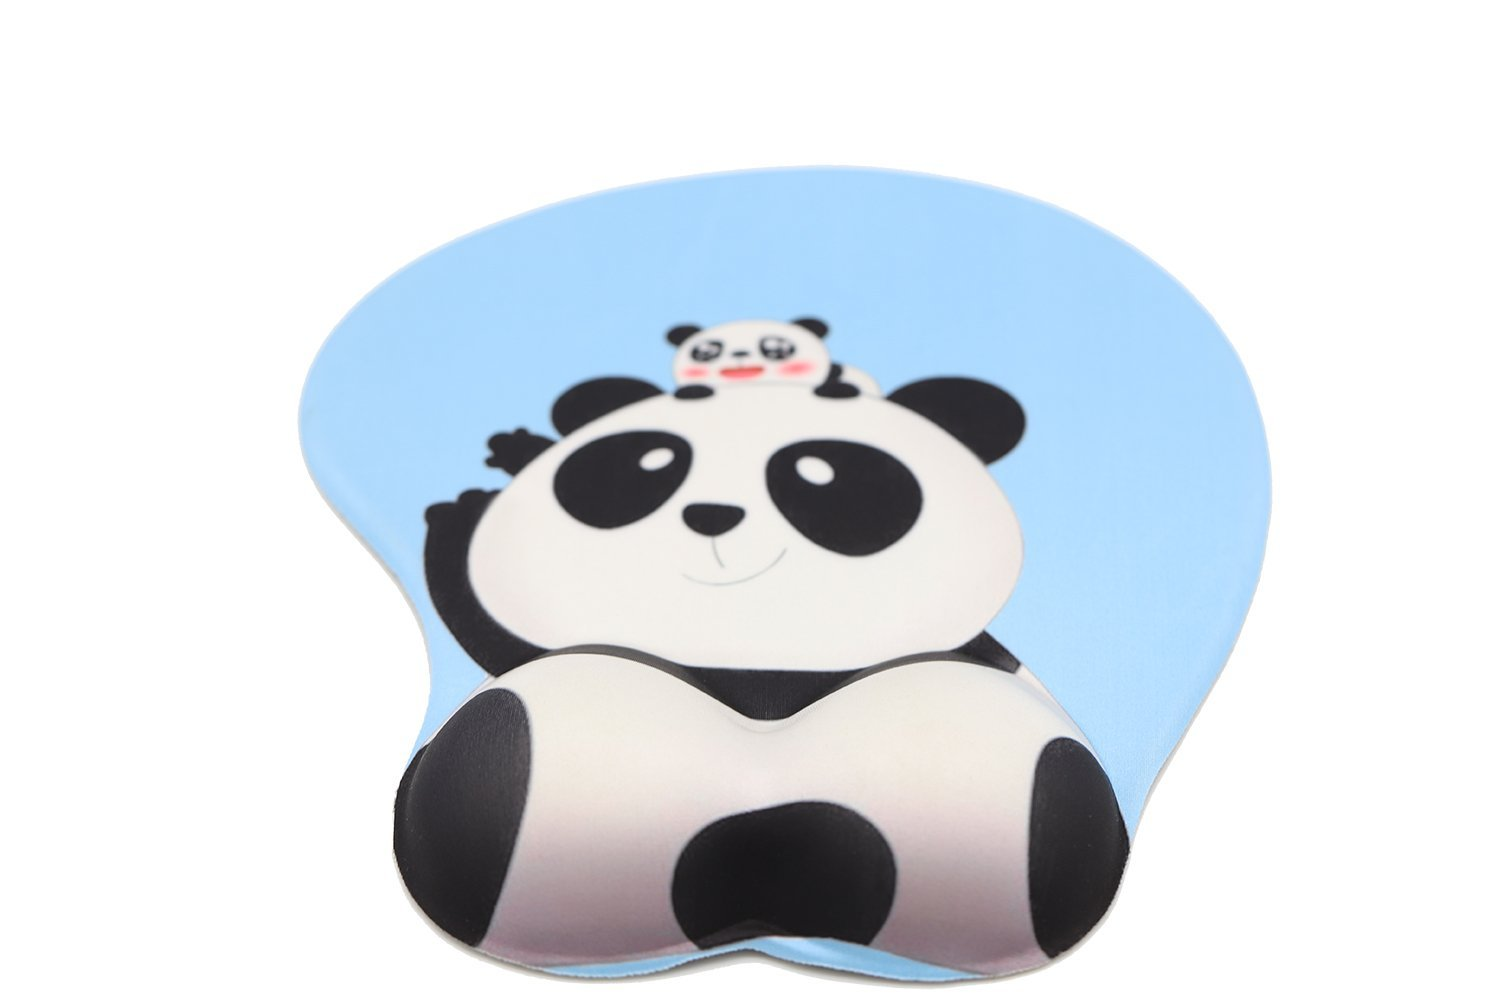 Cute Cartoon Panda Butt 3D Soft Wrist Support Gaming Office Mouse Pad (Panda) by Dream Date (Image #3)